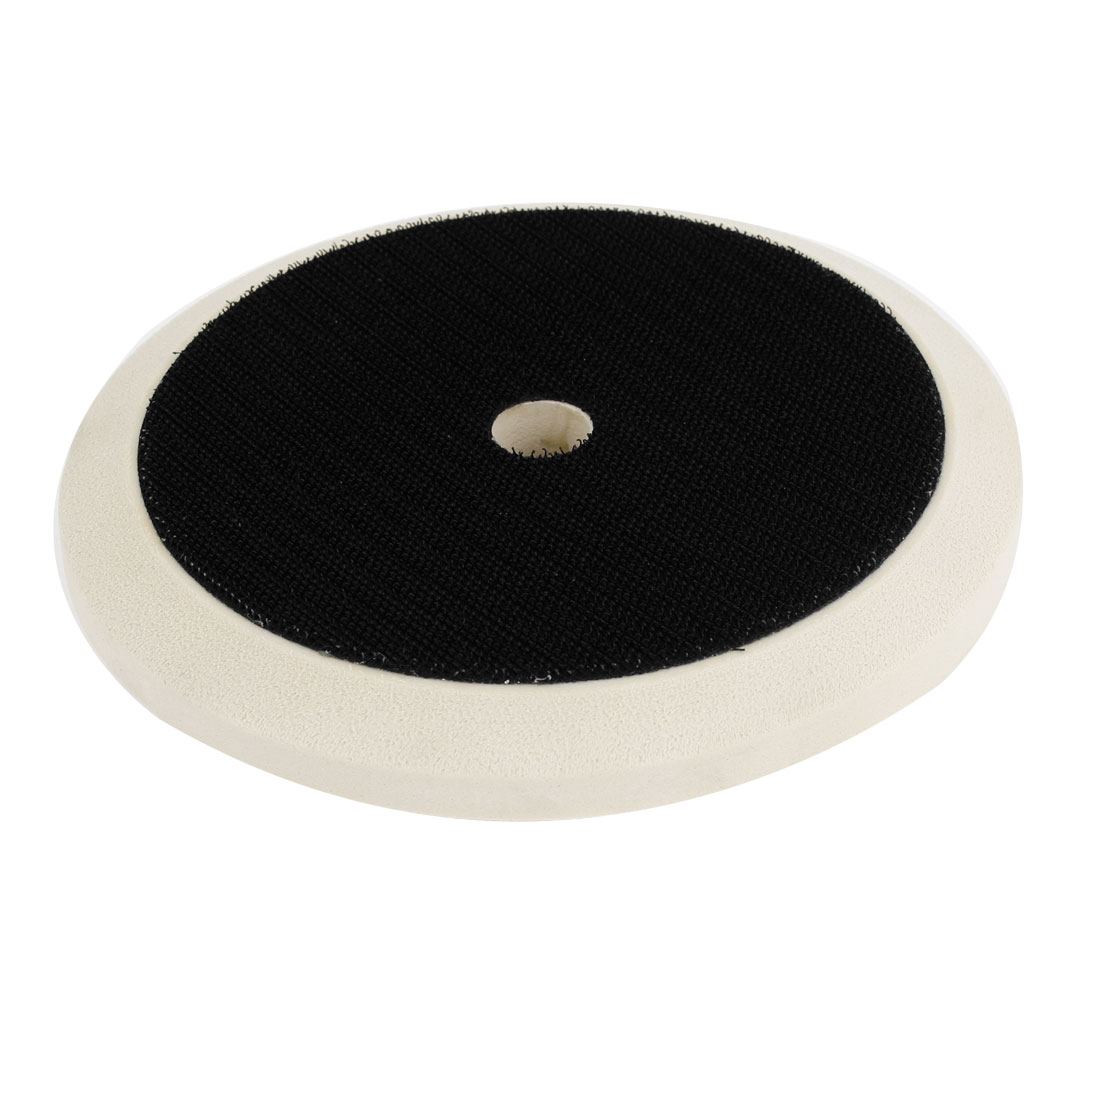 "Vehicle Car Foam Plastic 5.7"" Dia Round Buffing Polishing Wheel Cleaner"